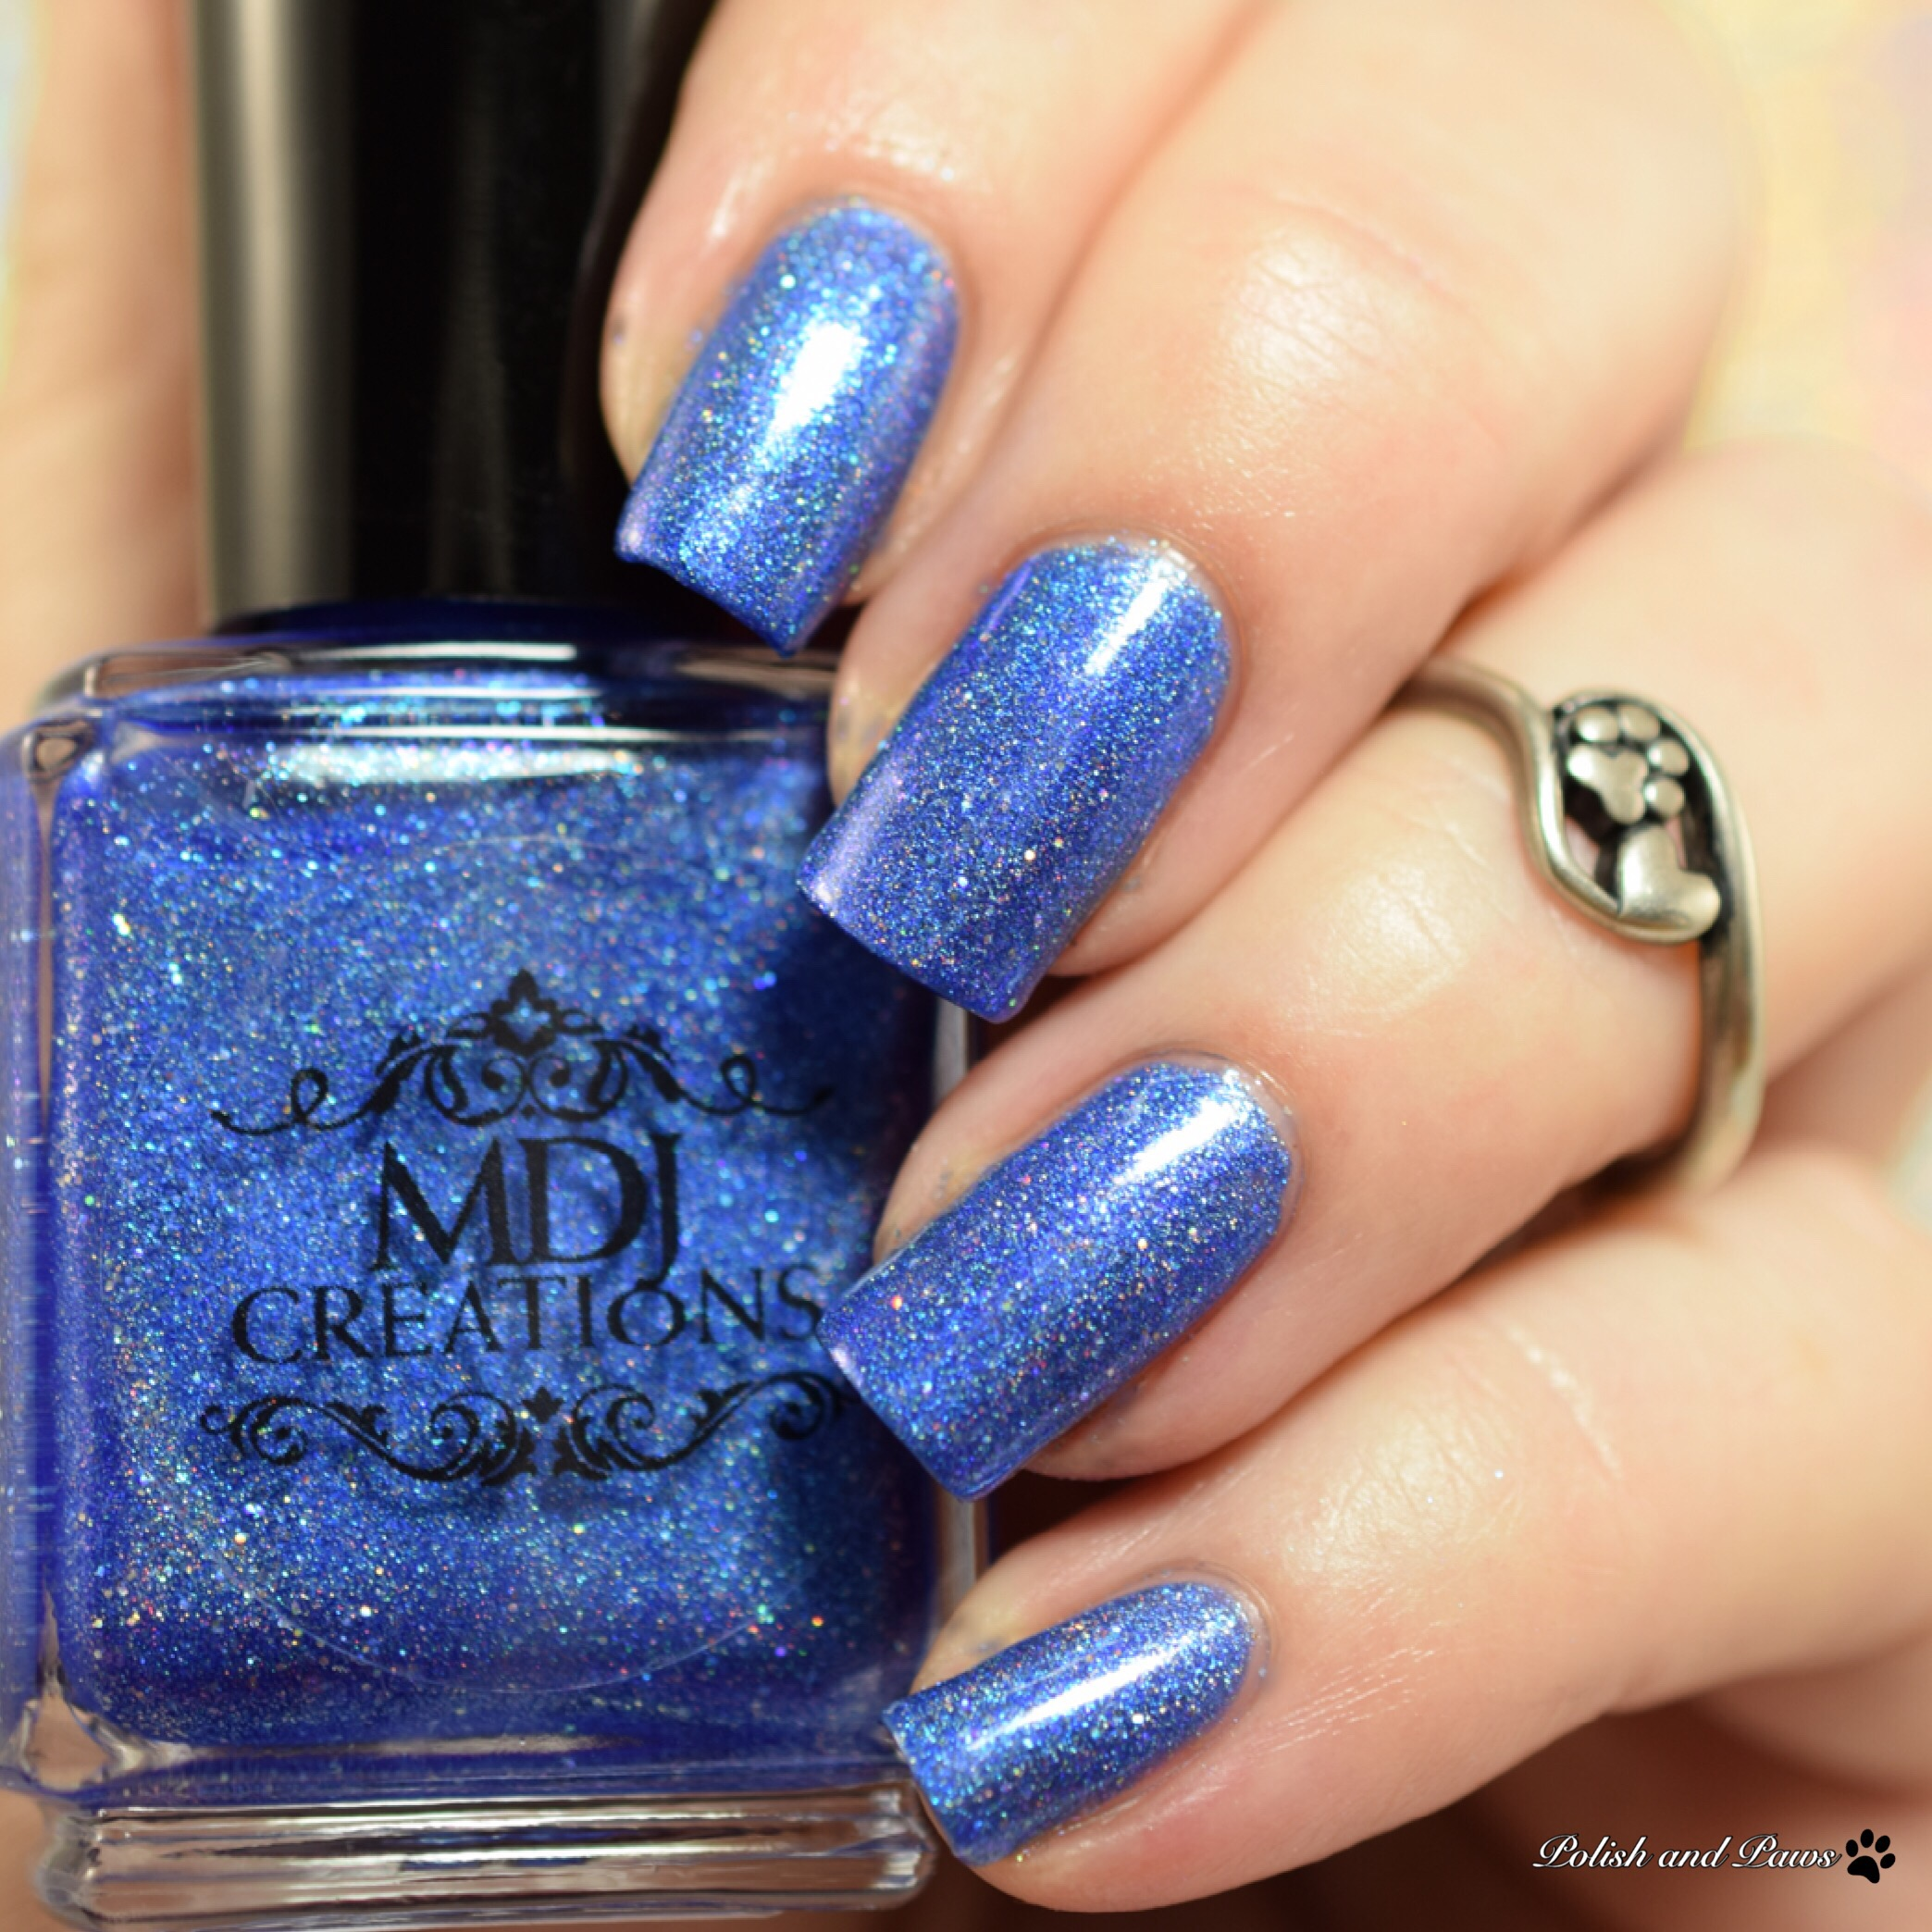 MDJ Creations Roy G. Biv Blue